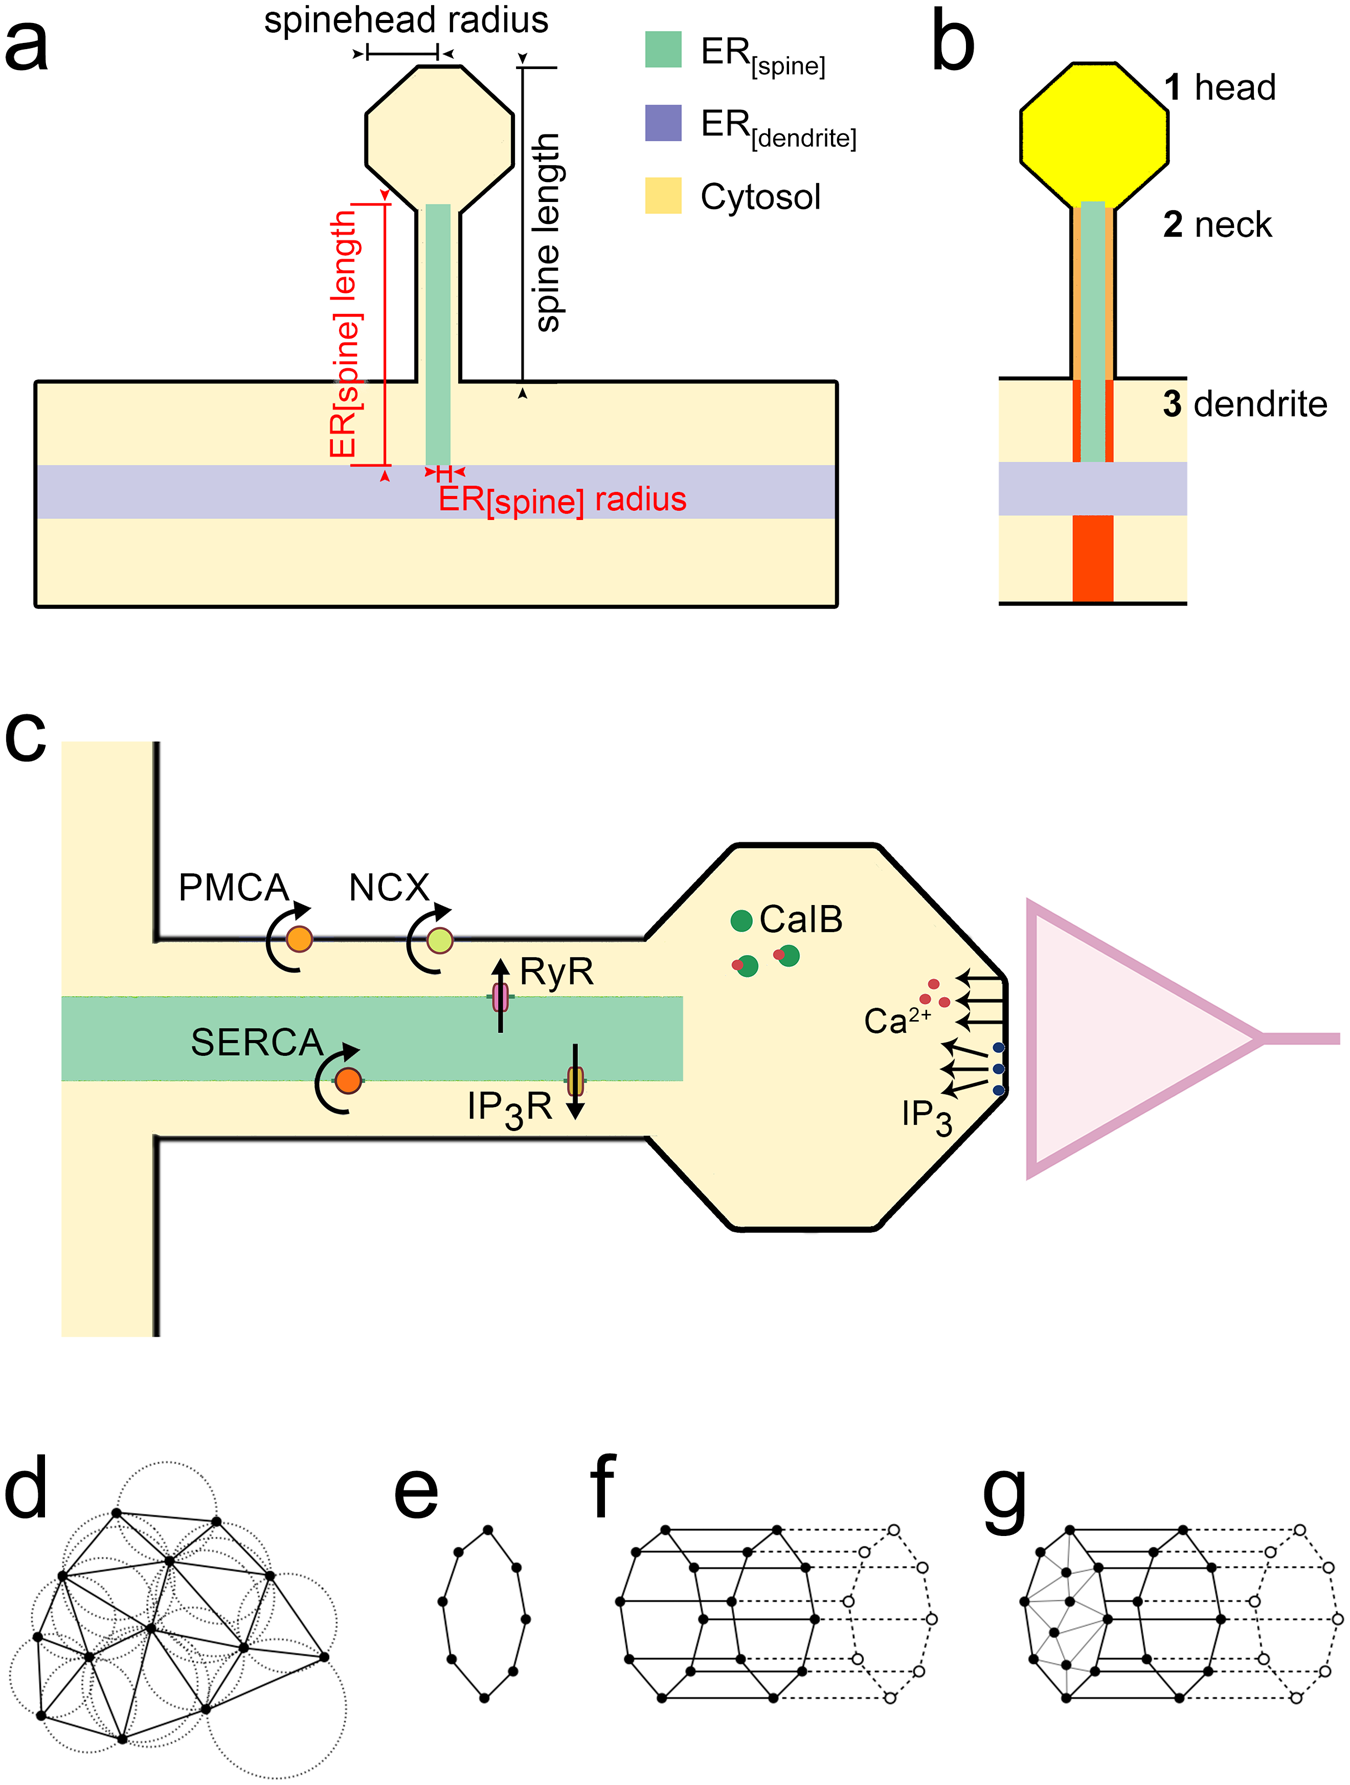 Spine To Dendrite Calcium Modeling Discloses Relevance For Precise A Simple And Easy Use Circuit Simulator Thanks This Java Positioning Of Ryanodine Receptor Containing Endoplasmic Reticulum Scientific